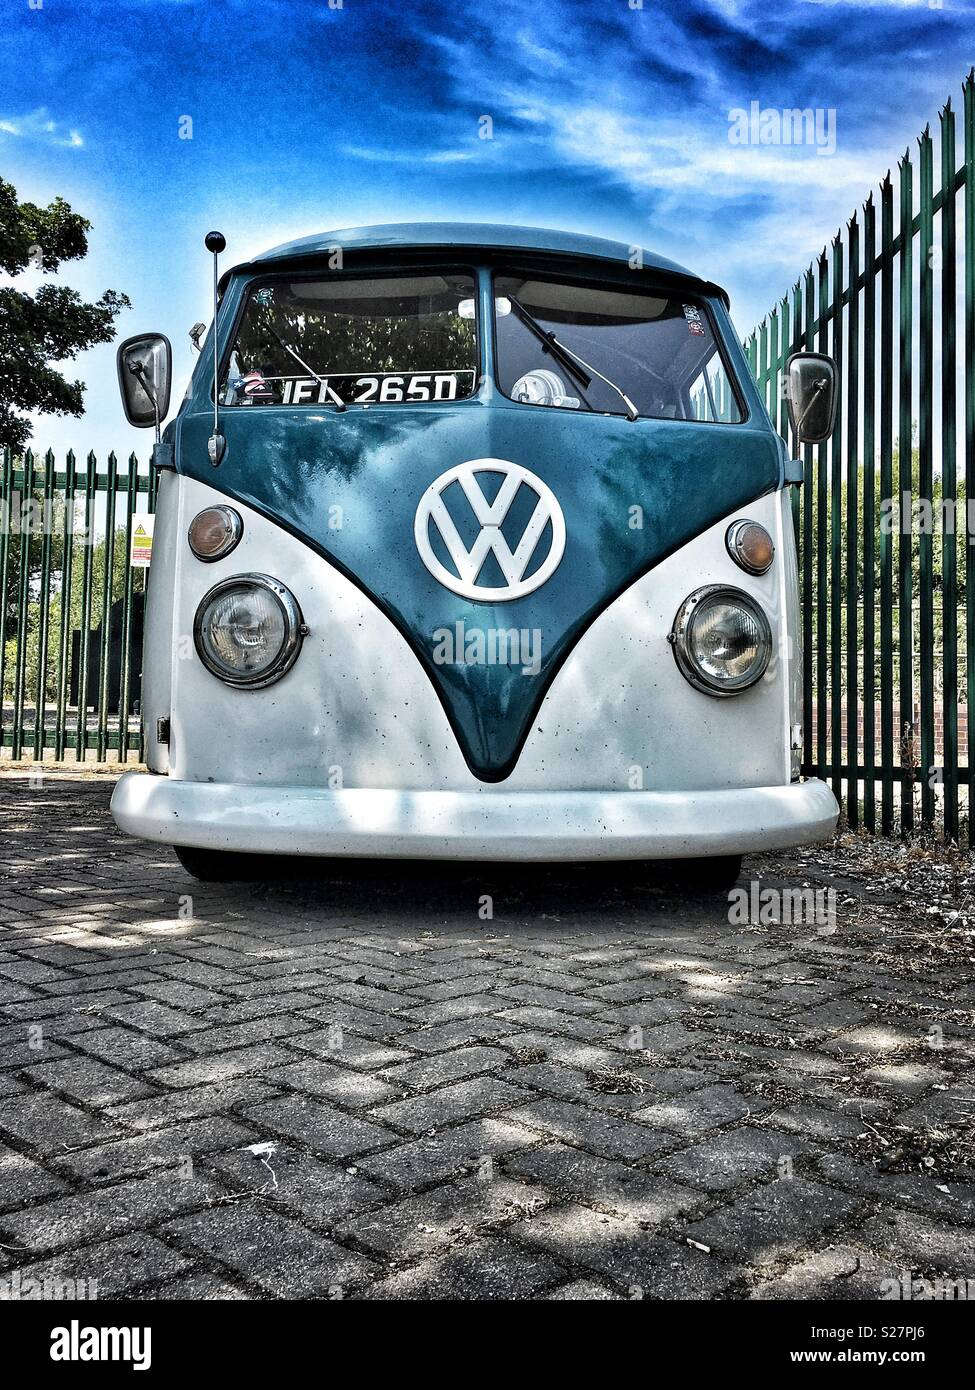 Retro Volkswagon Camper Van Front Angle View Seen Parked Next To Metal Railings Uk Stock Photo Alamy